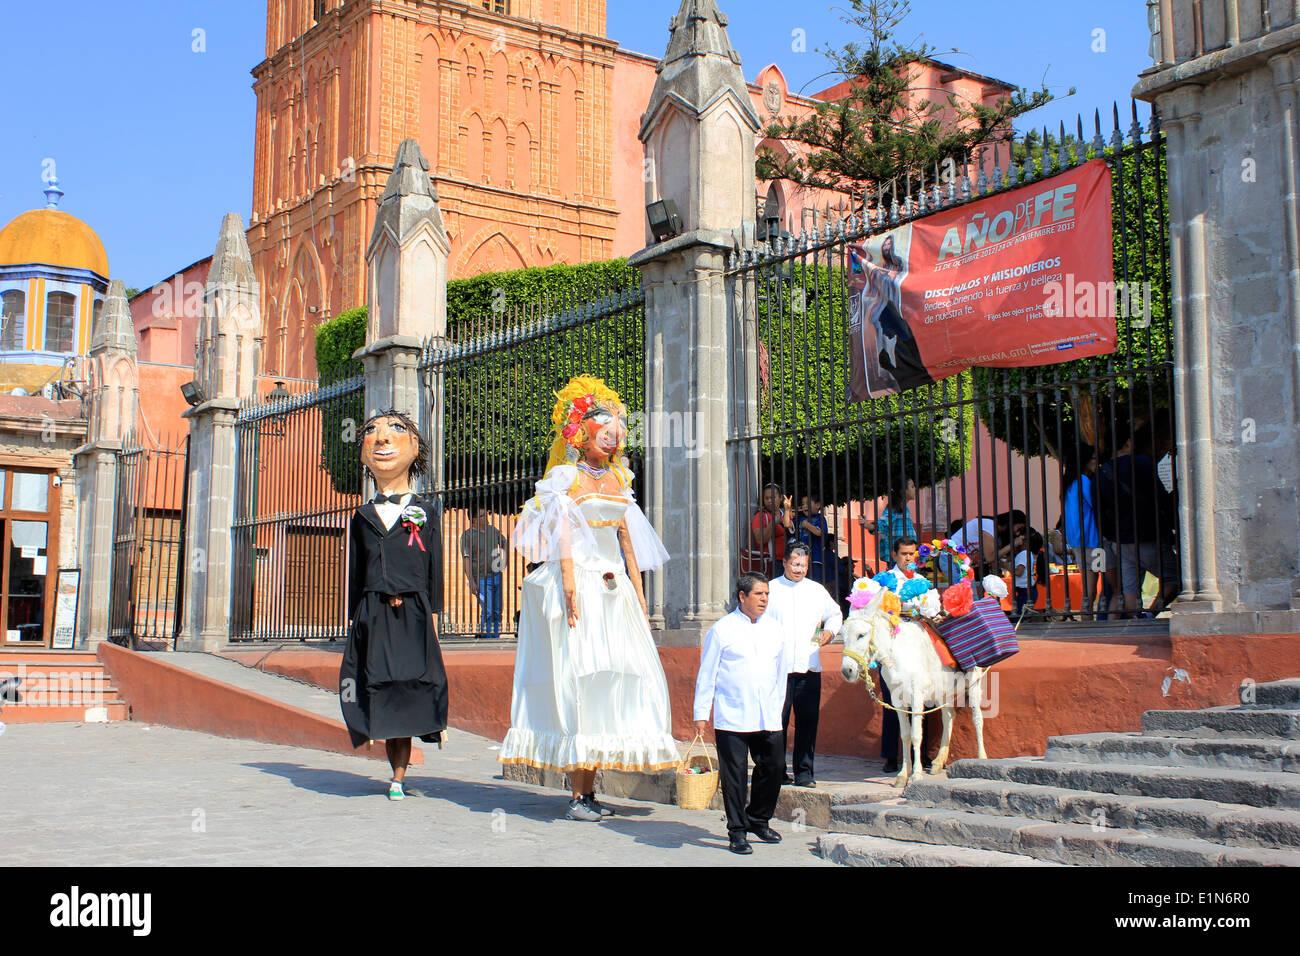 The giants and donkey at a wedding in San Miguel de Allende, Guanajuato, Mexico - Stock Image